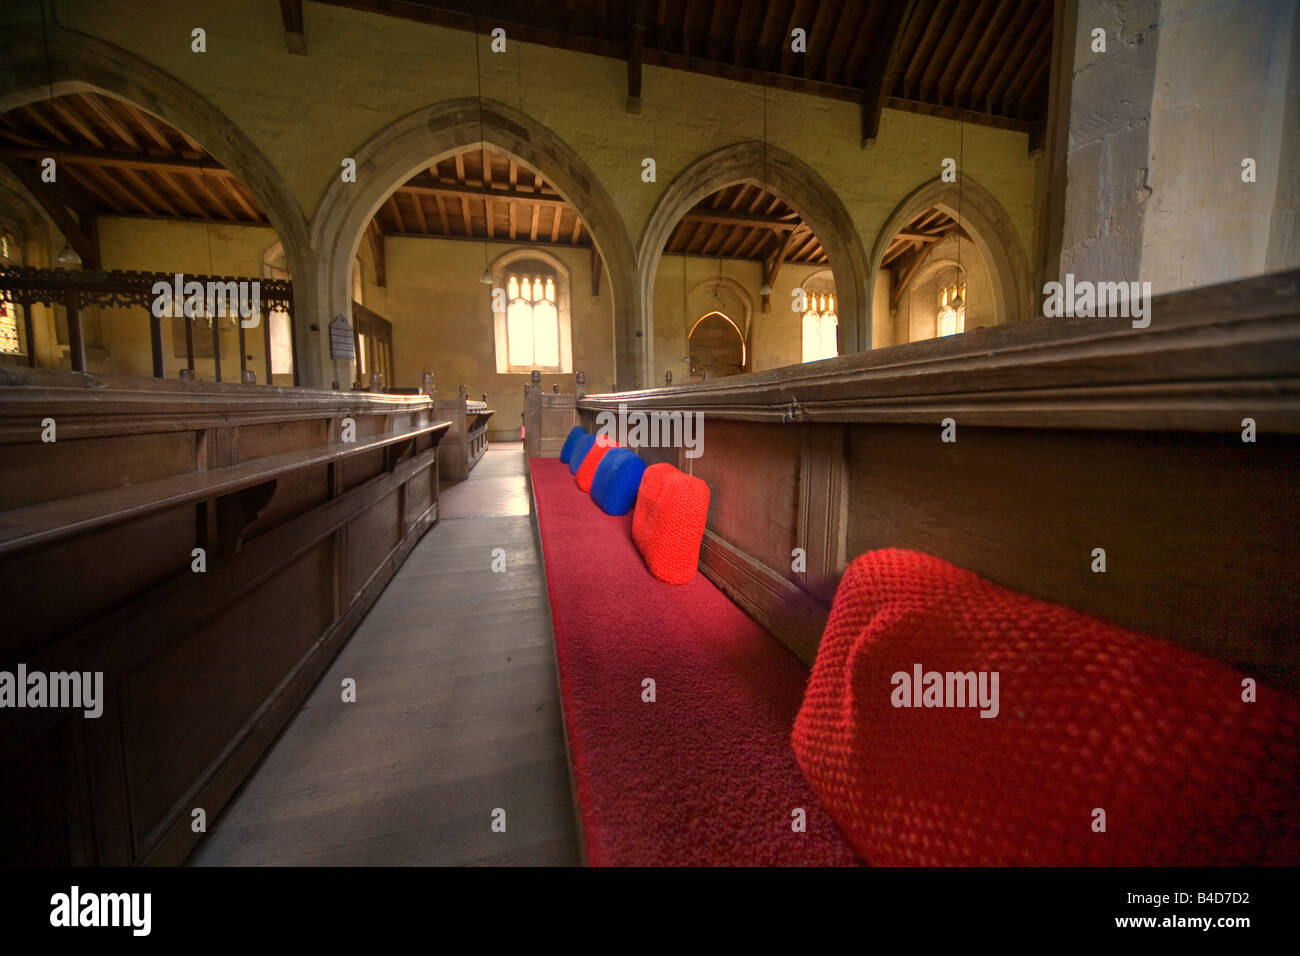 View along a church pew - Stock Image